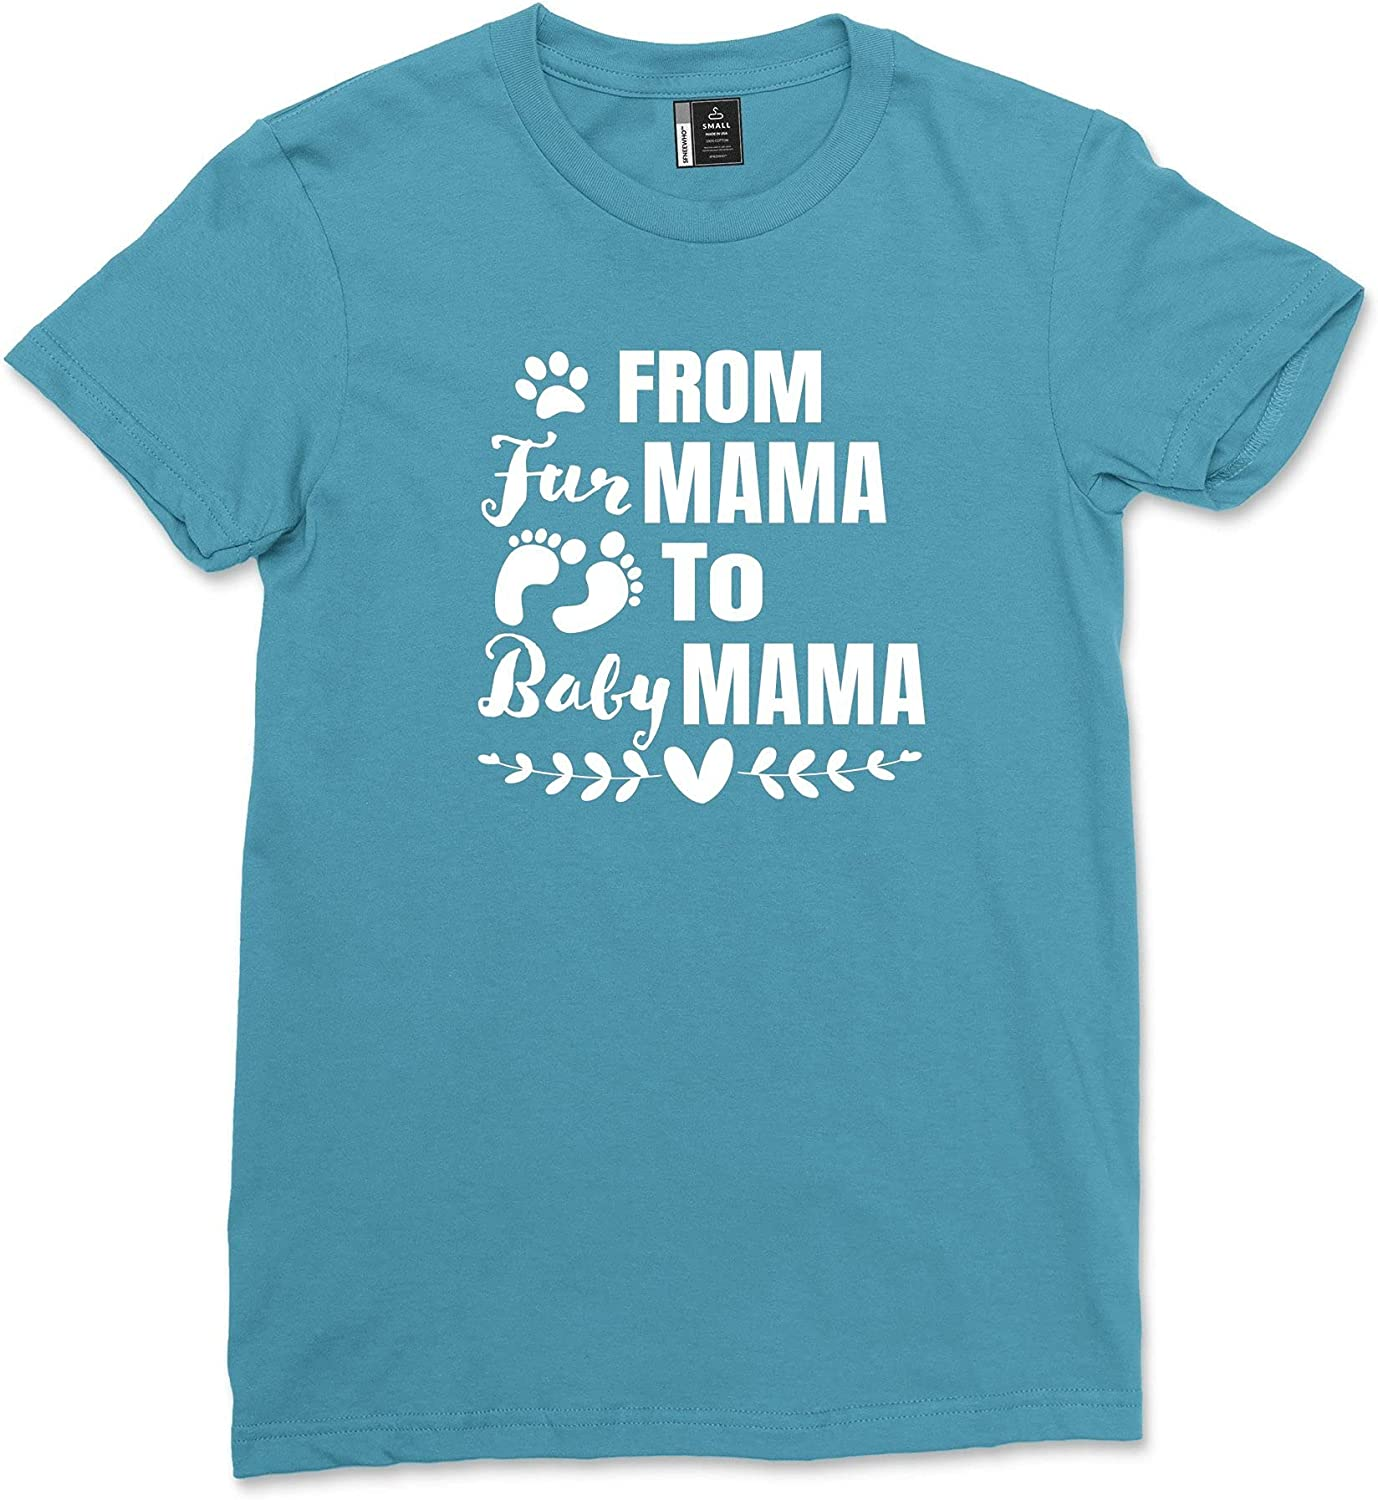 SFNEEWHO from Fur Mama to Women A Pregnancy Sales Shirt Baby sale